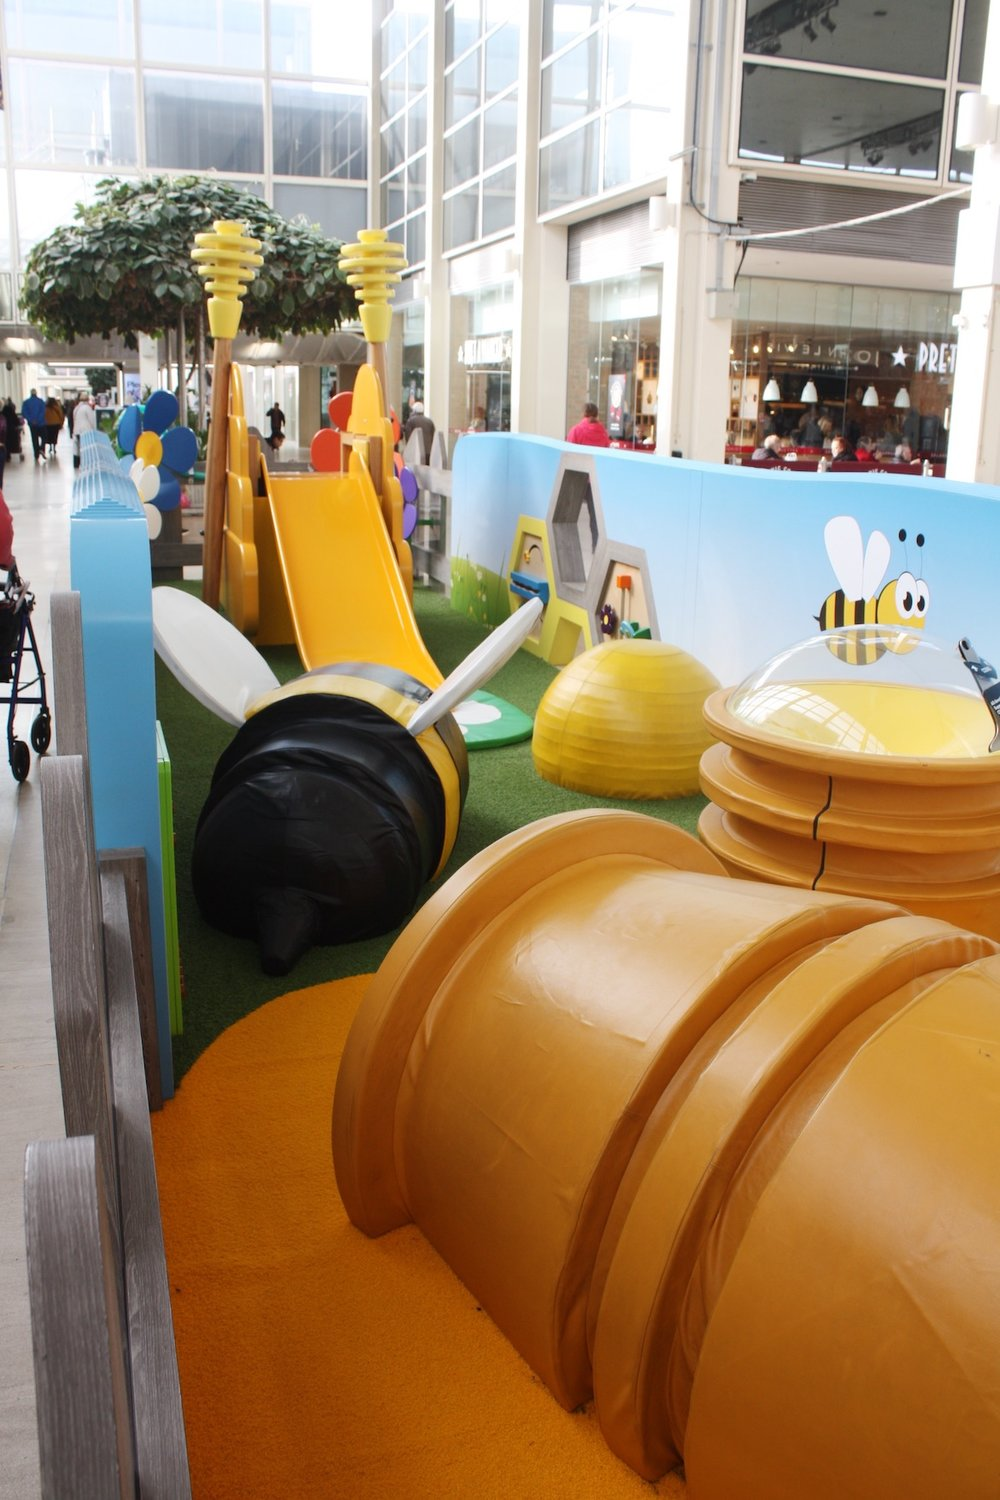 Children can climb on the giant bee and crawl into the honey pot tunnel.